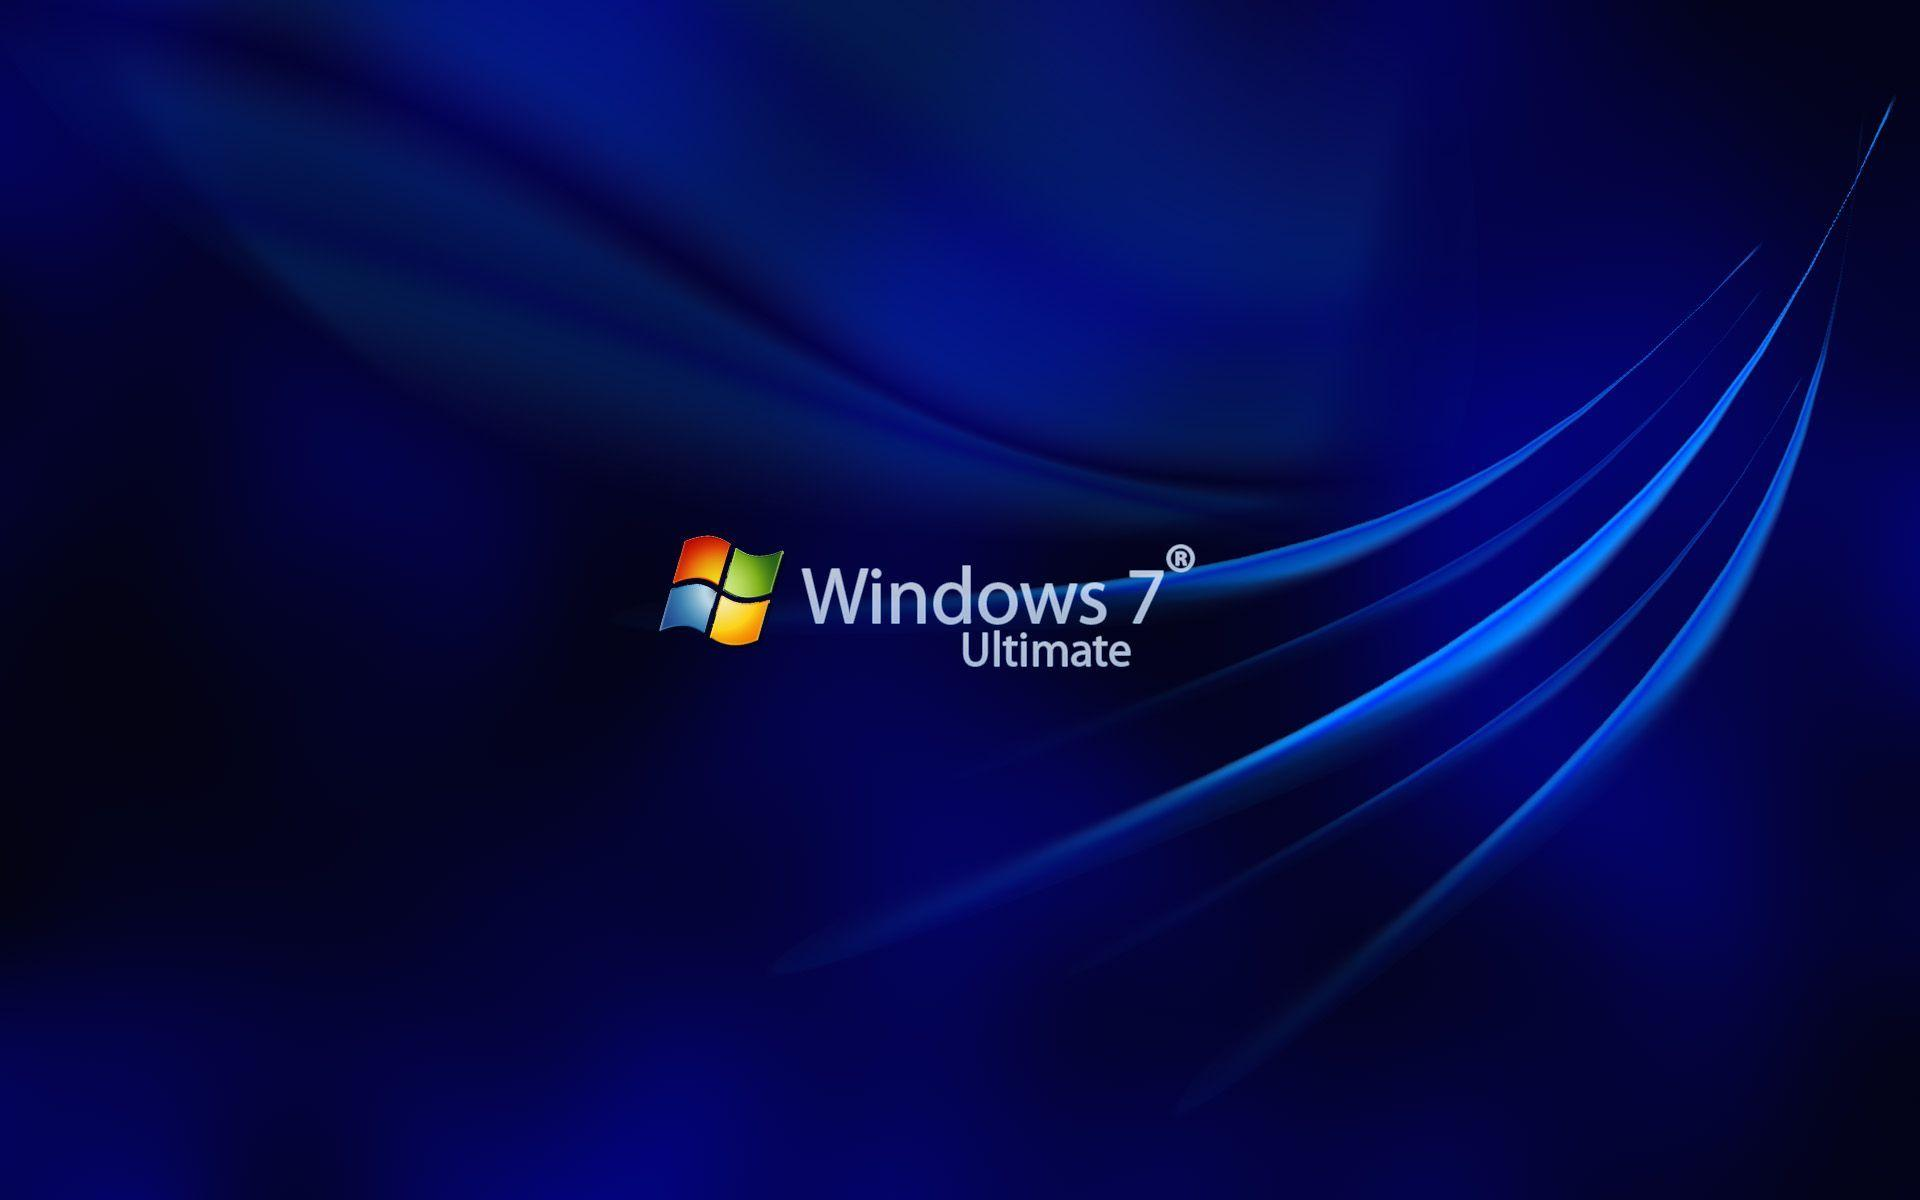 Windows 7 ultimate wallpapers wallpaper cave for Window 7 ultimate